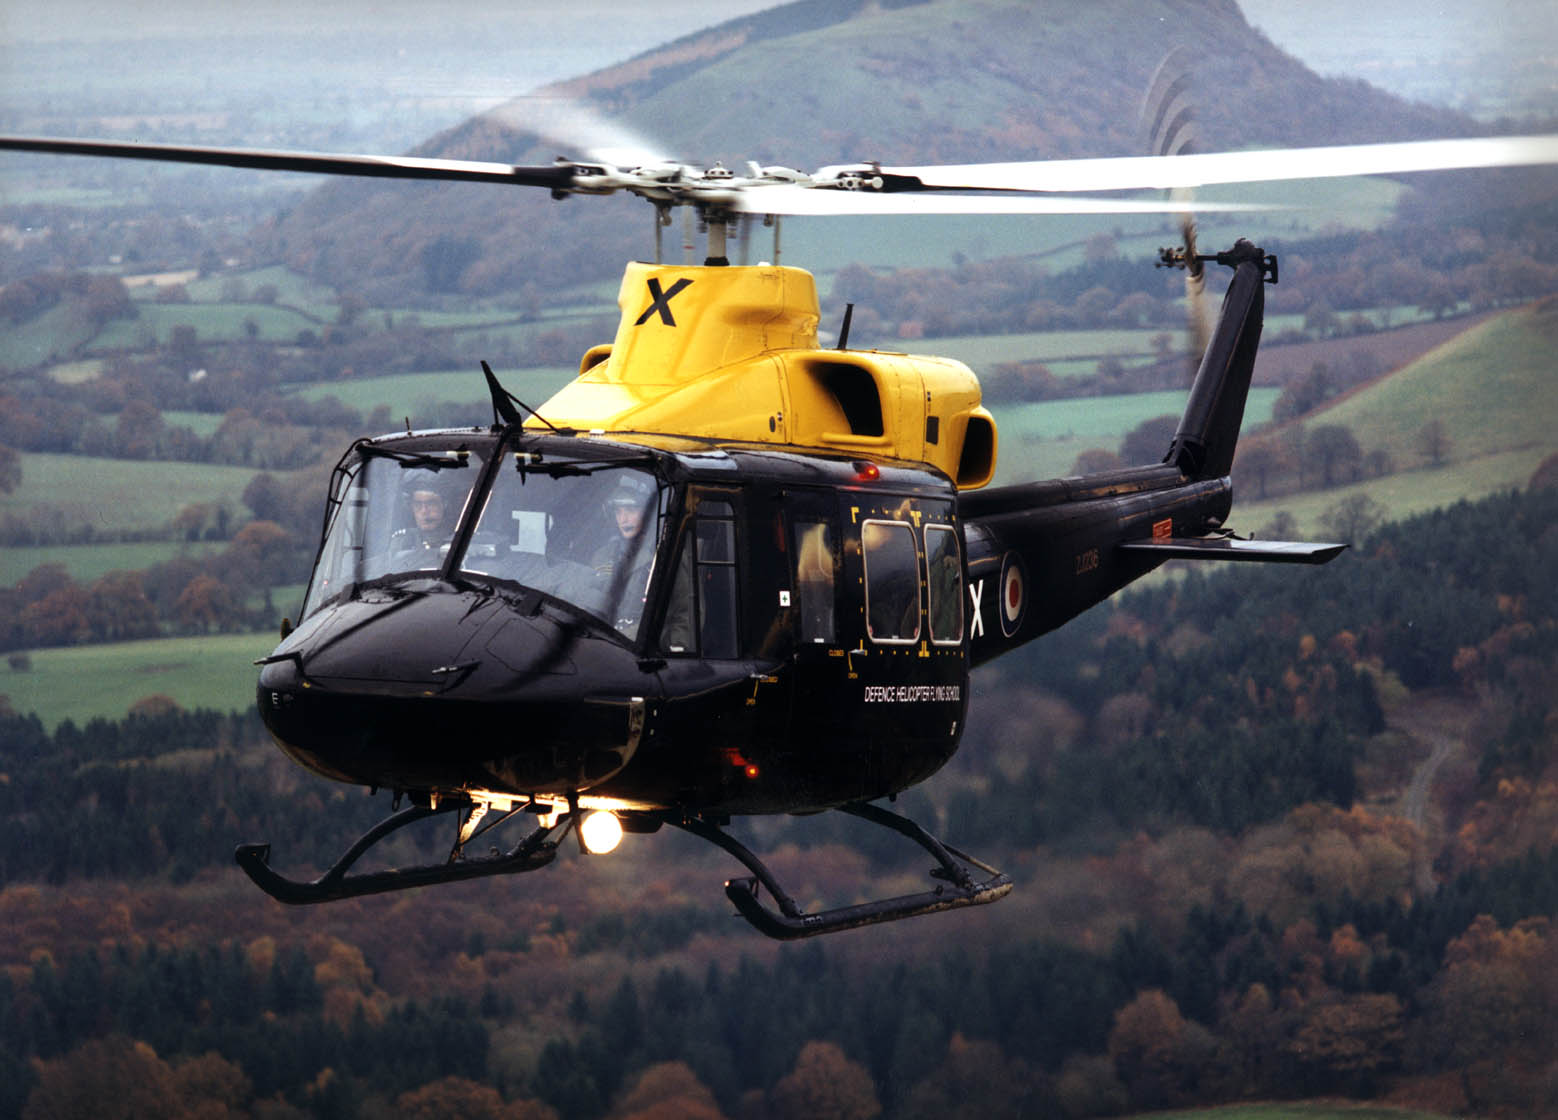 60 Sqn Griffin helicopter from RAF Shawbury.